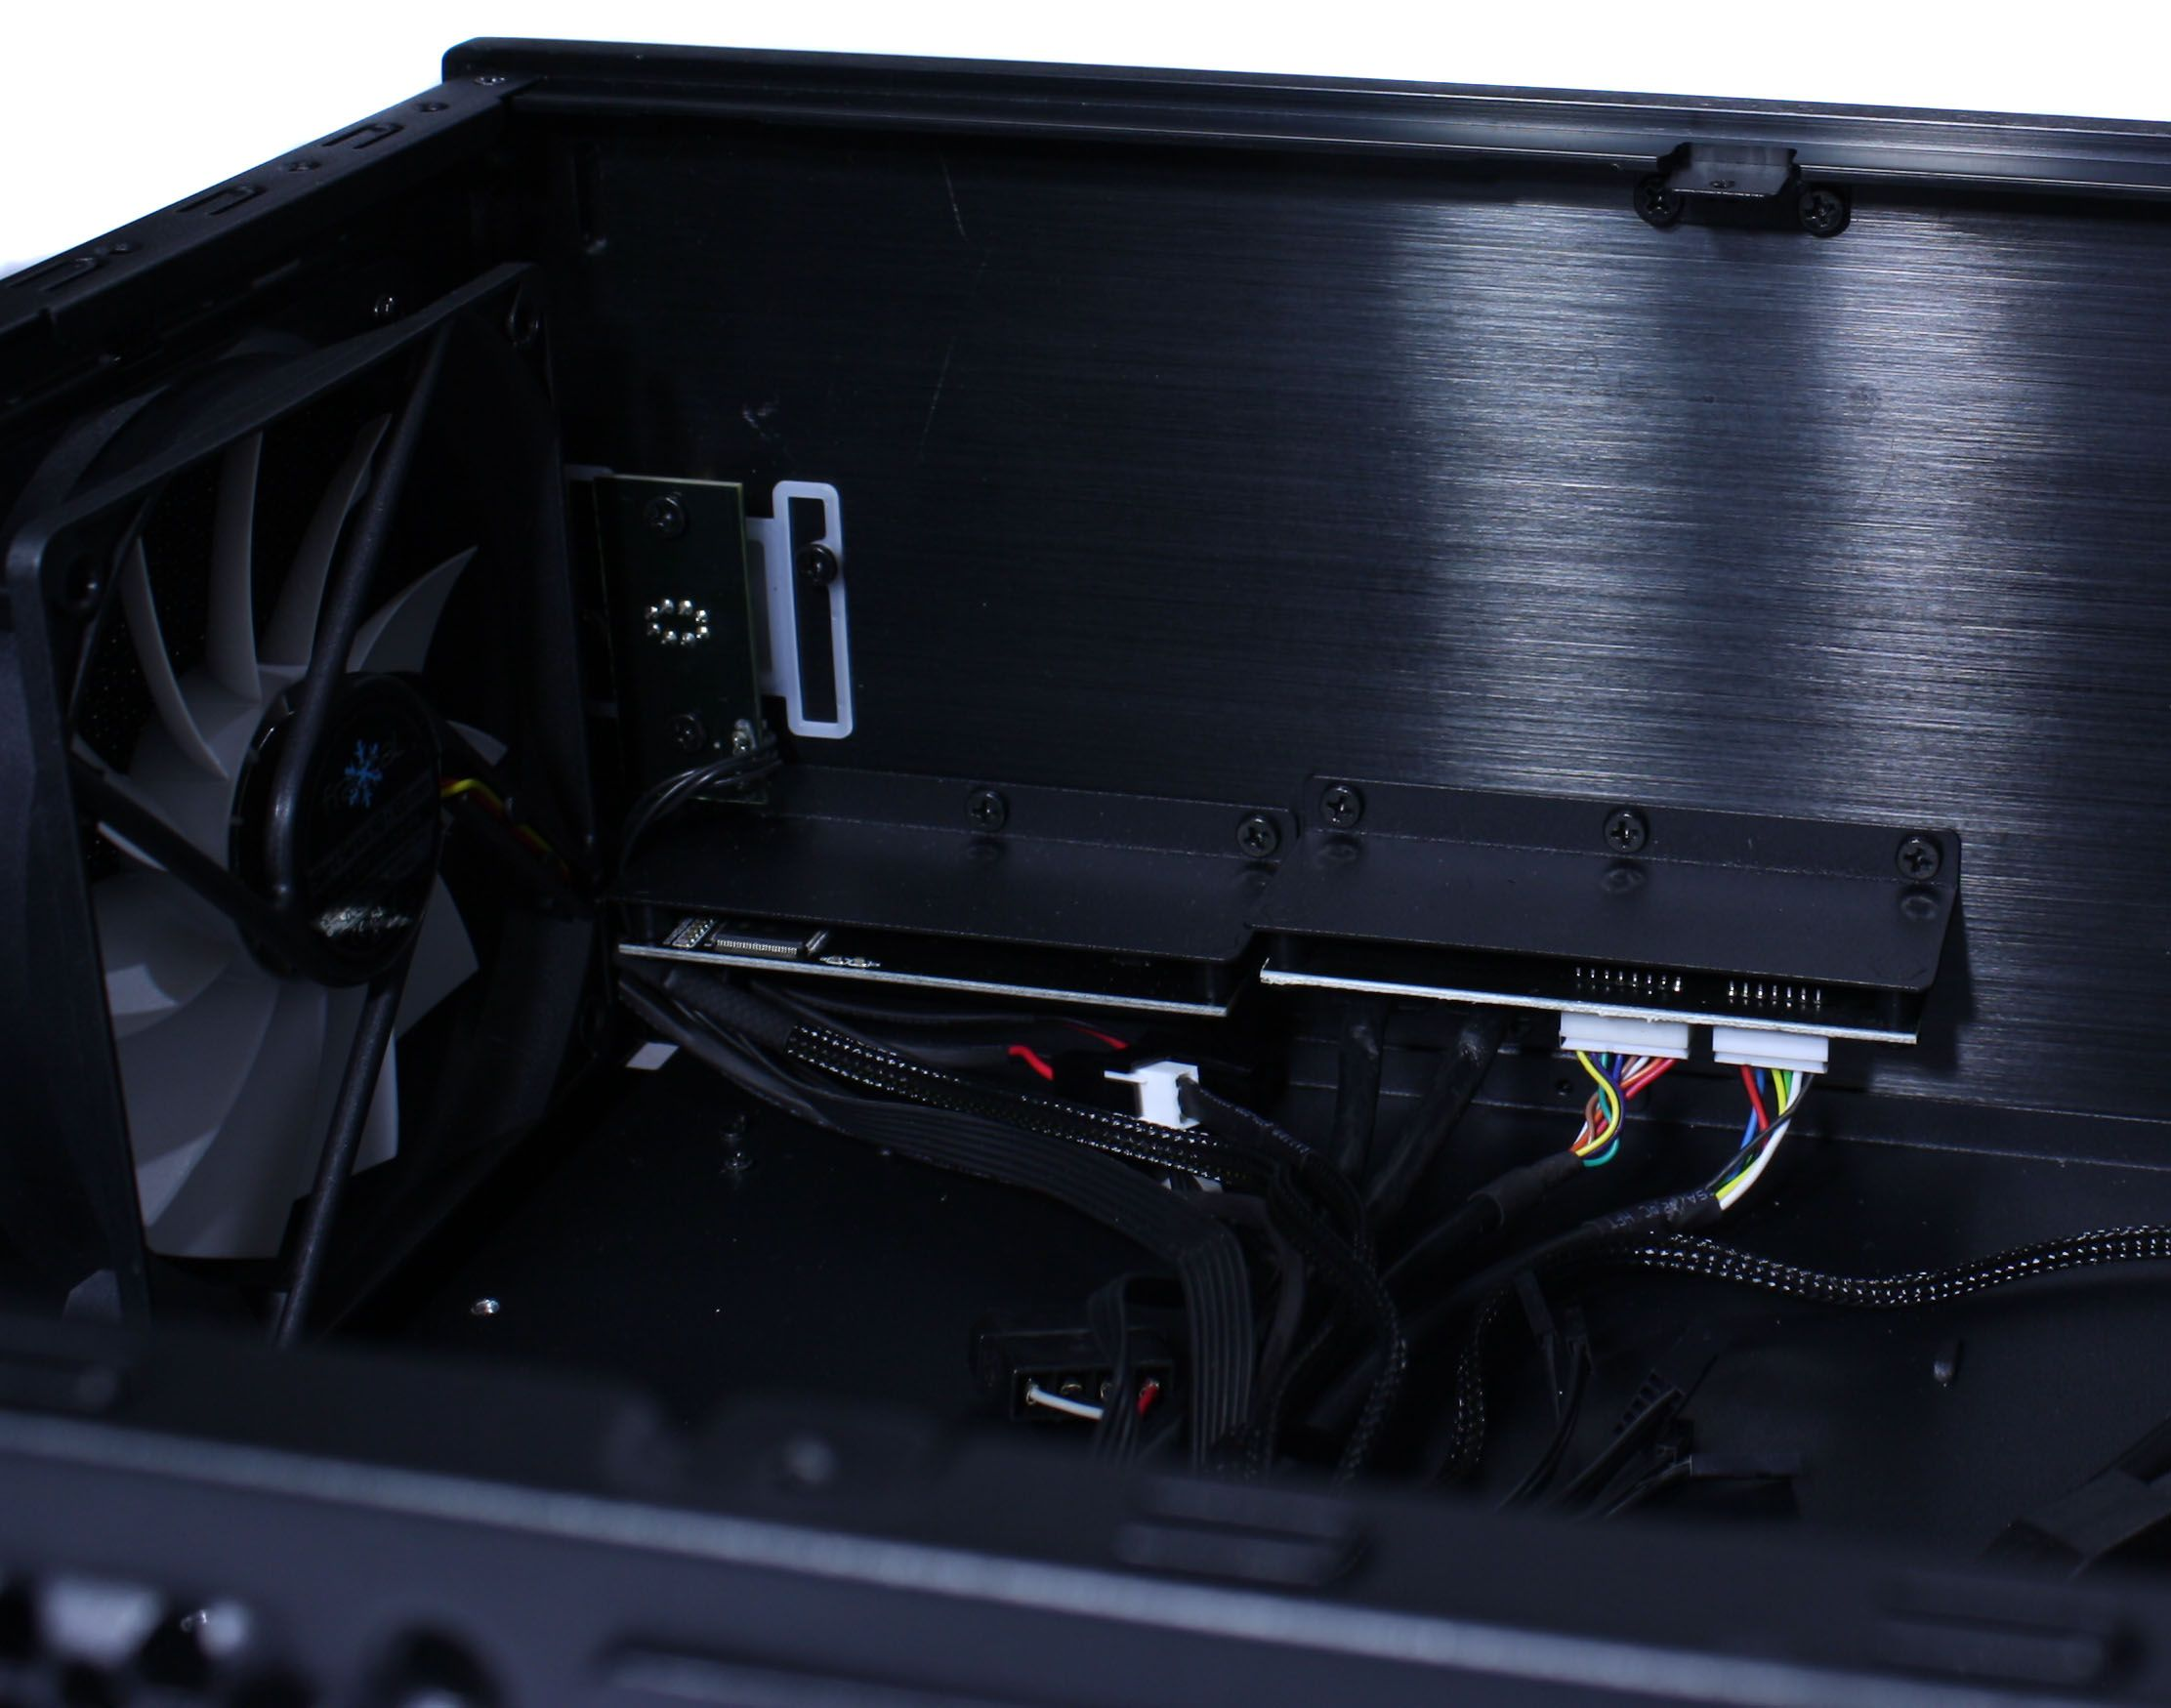 Fractal Design Node 605 I/O Back